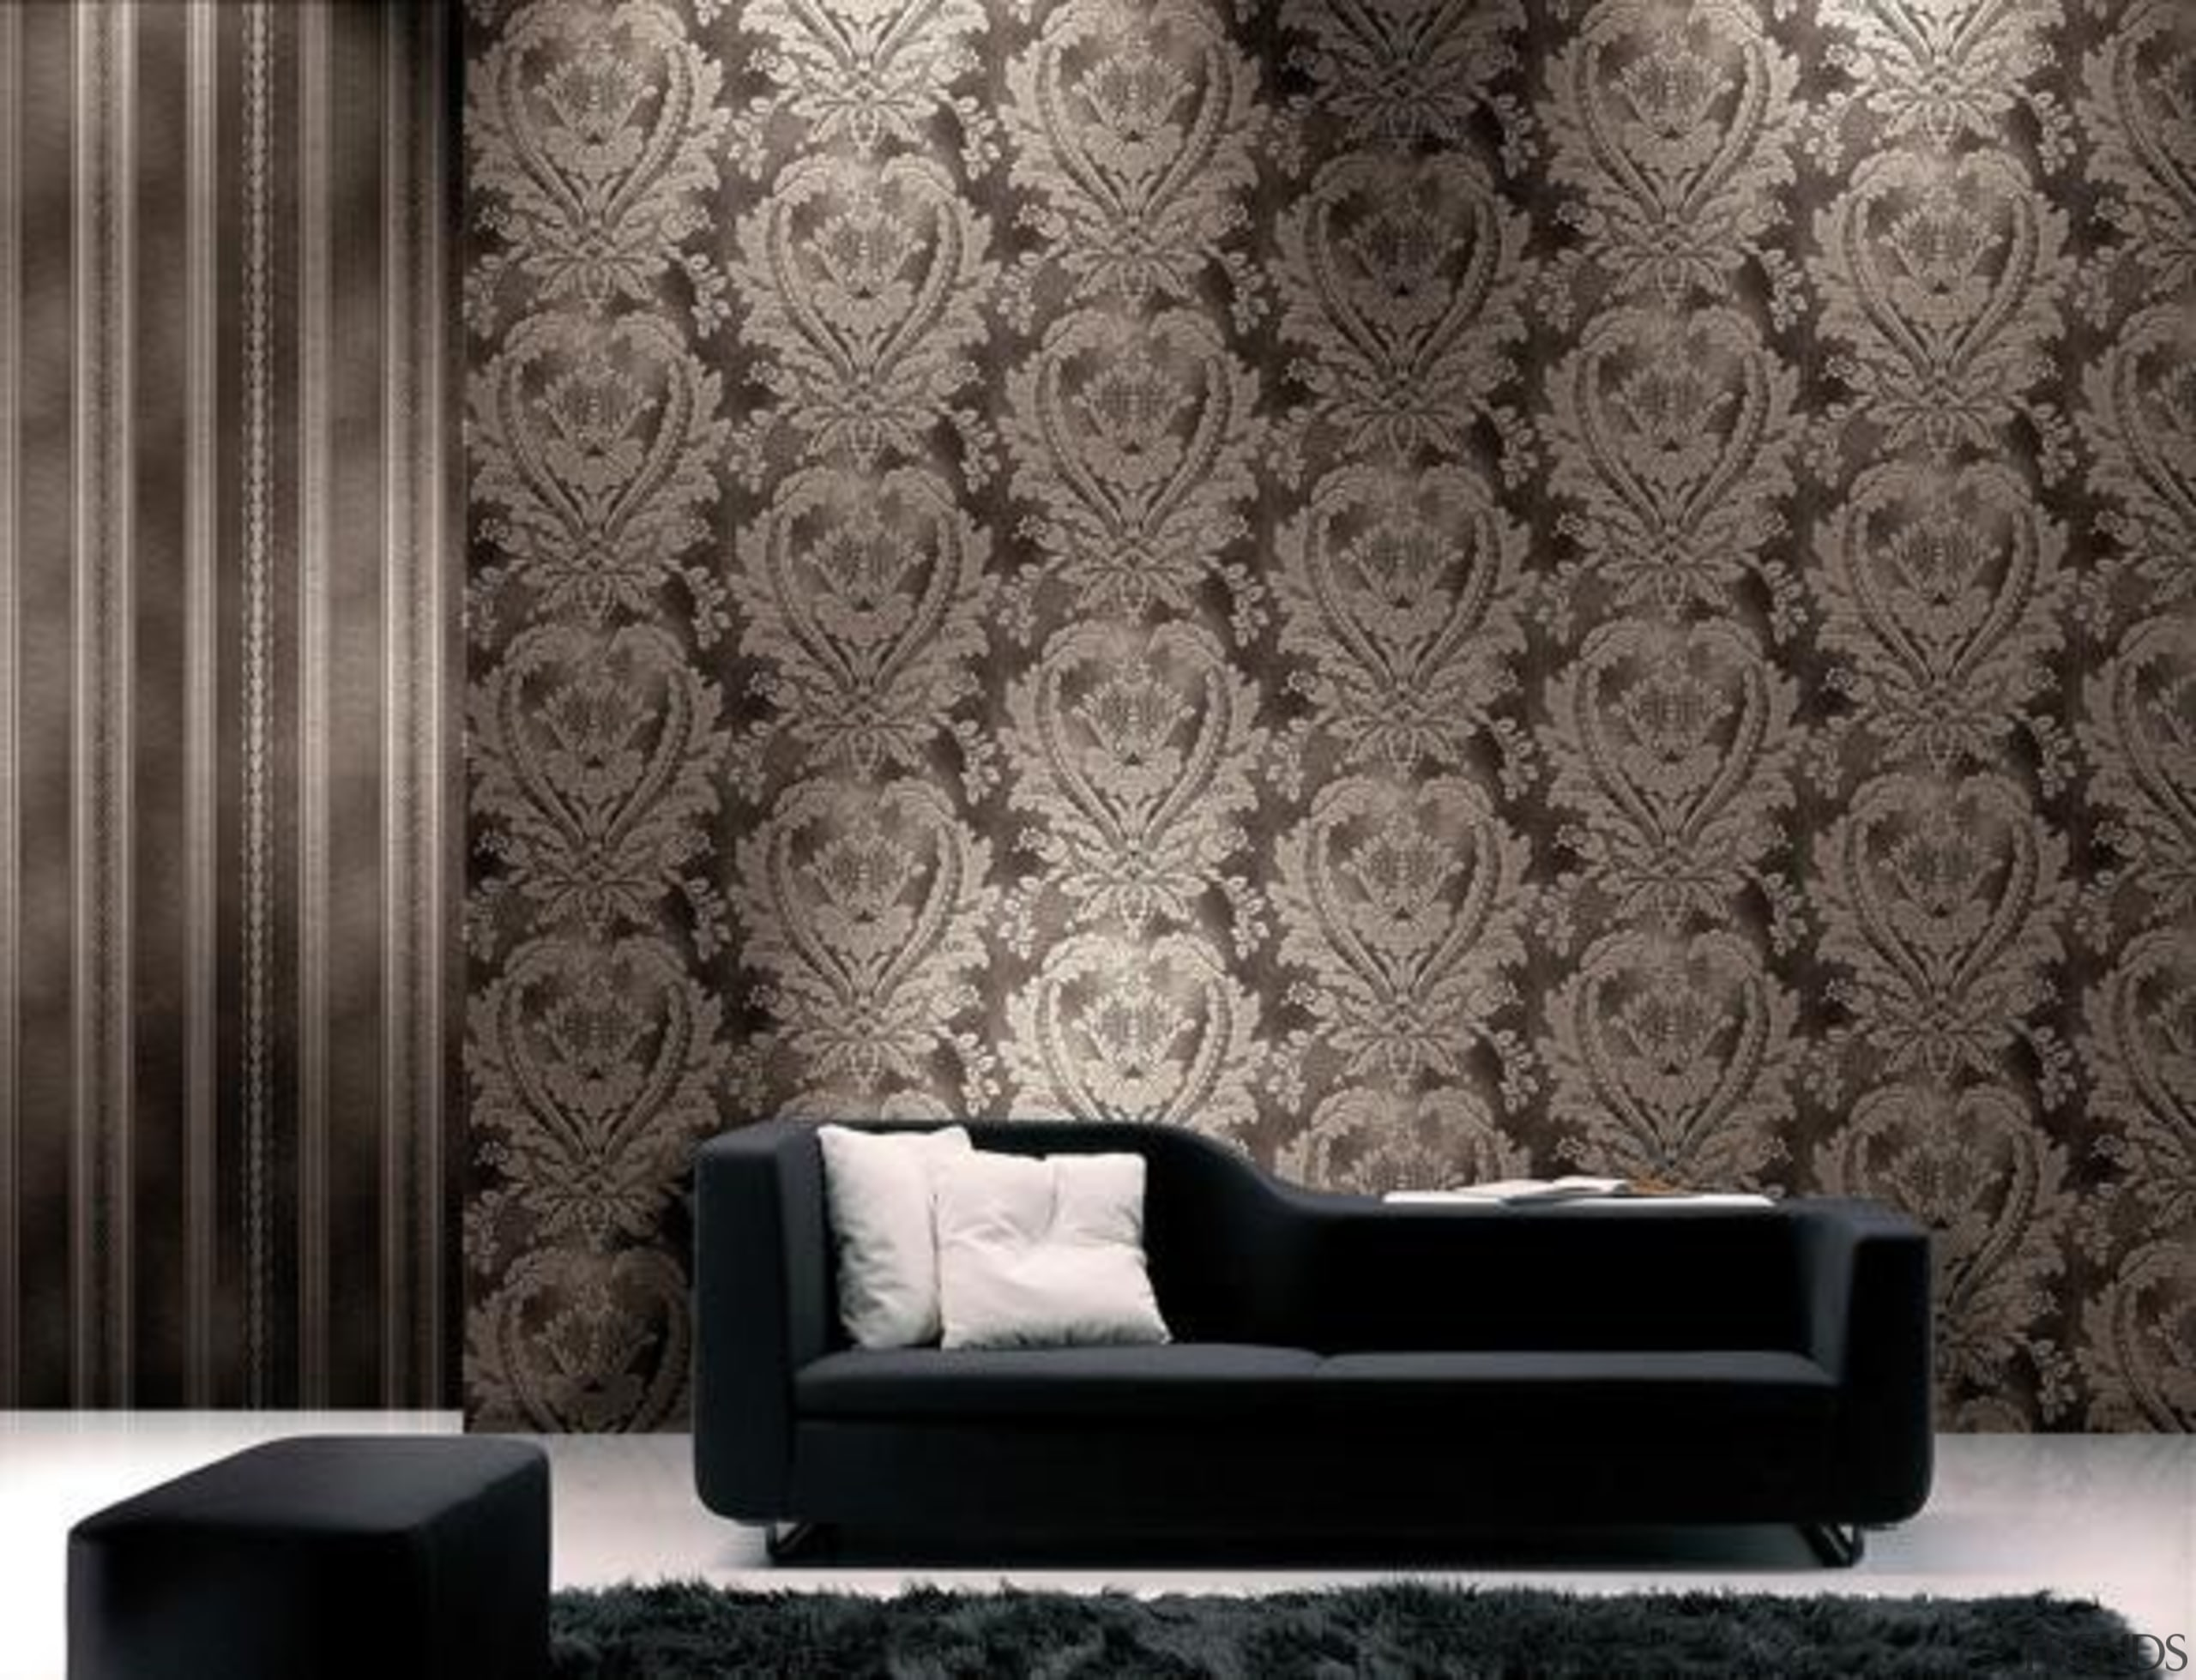 Modern Style Range - black and white | black and white, couch, interior design, living room, pattern, wall, wallpaper, gray, black